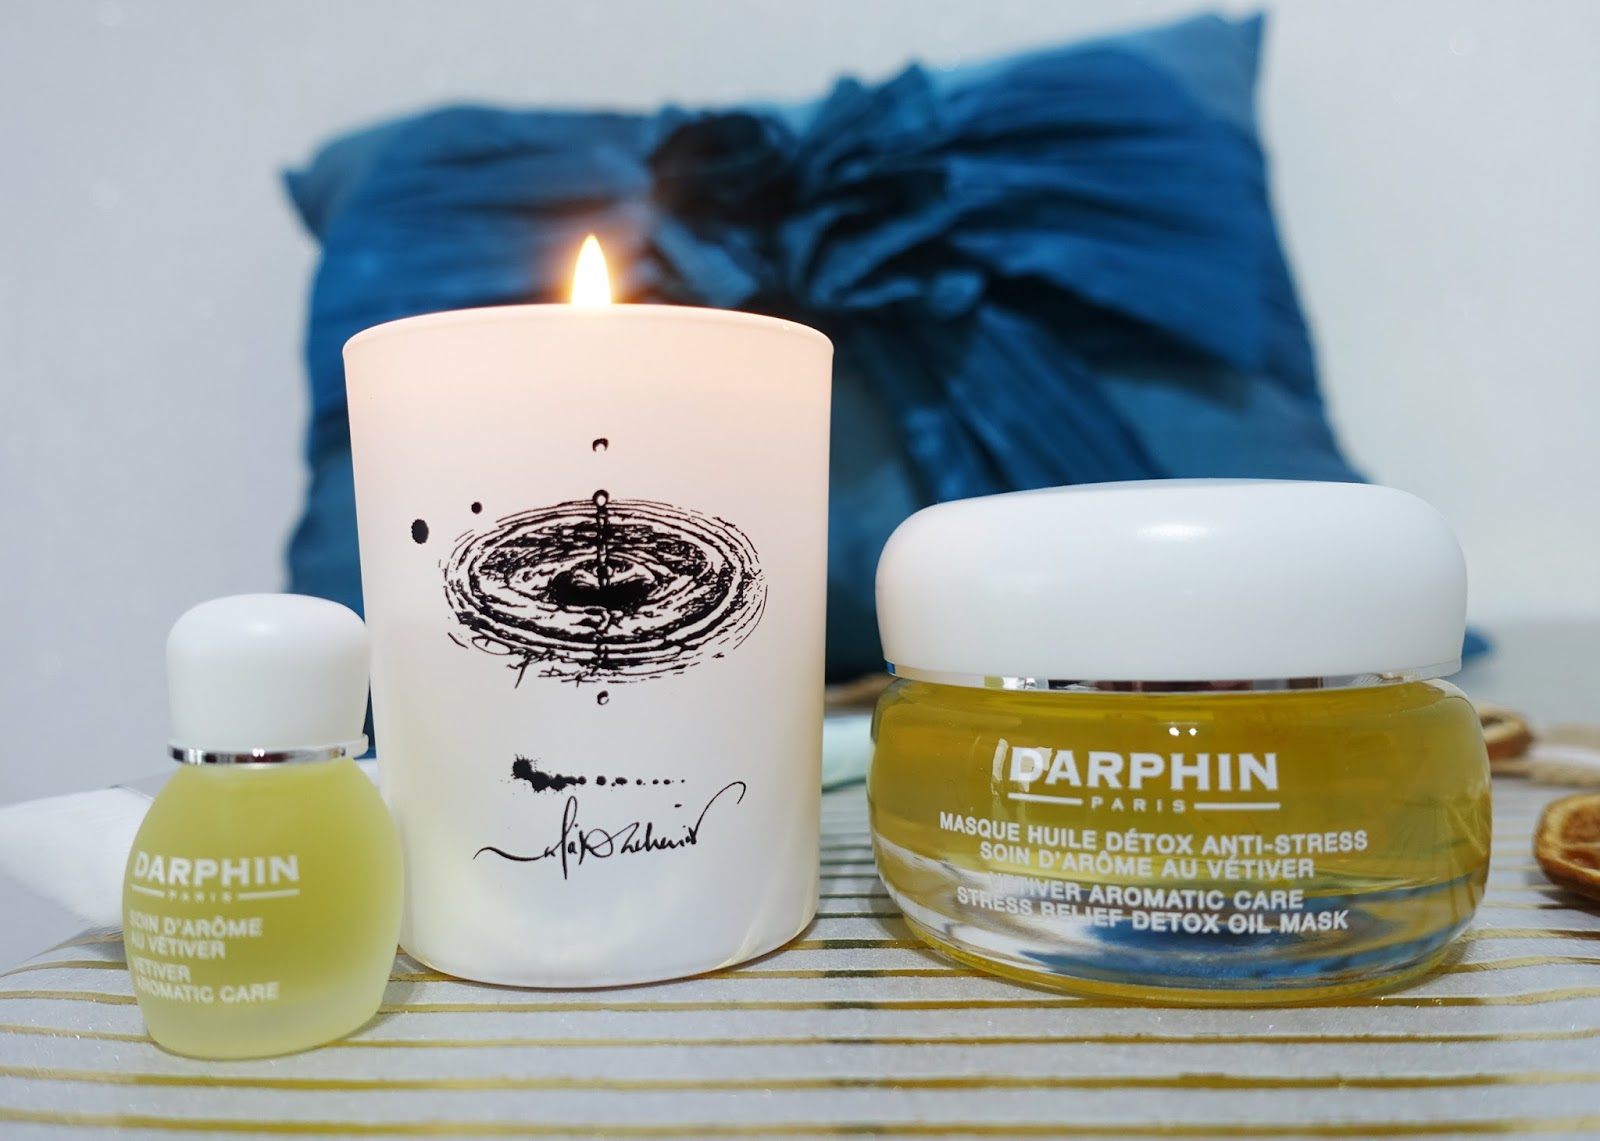 Image showing Darphin's Relax and Glow set: a vetiver facial mask, candle and oil to help reduce toxins and relieve stress.